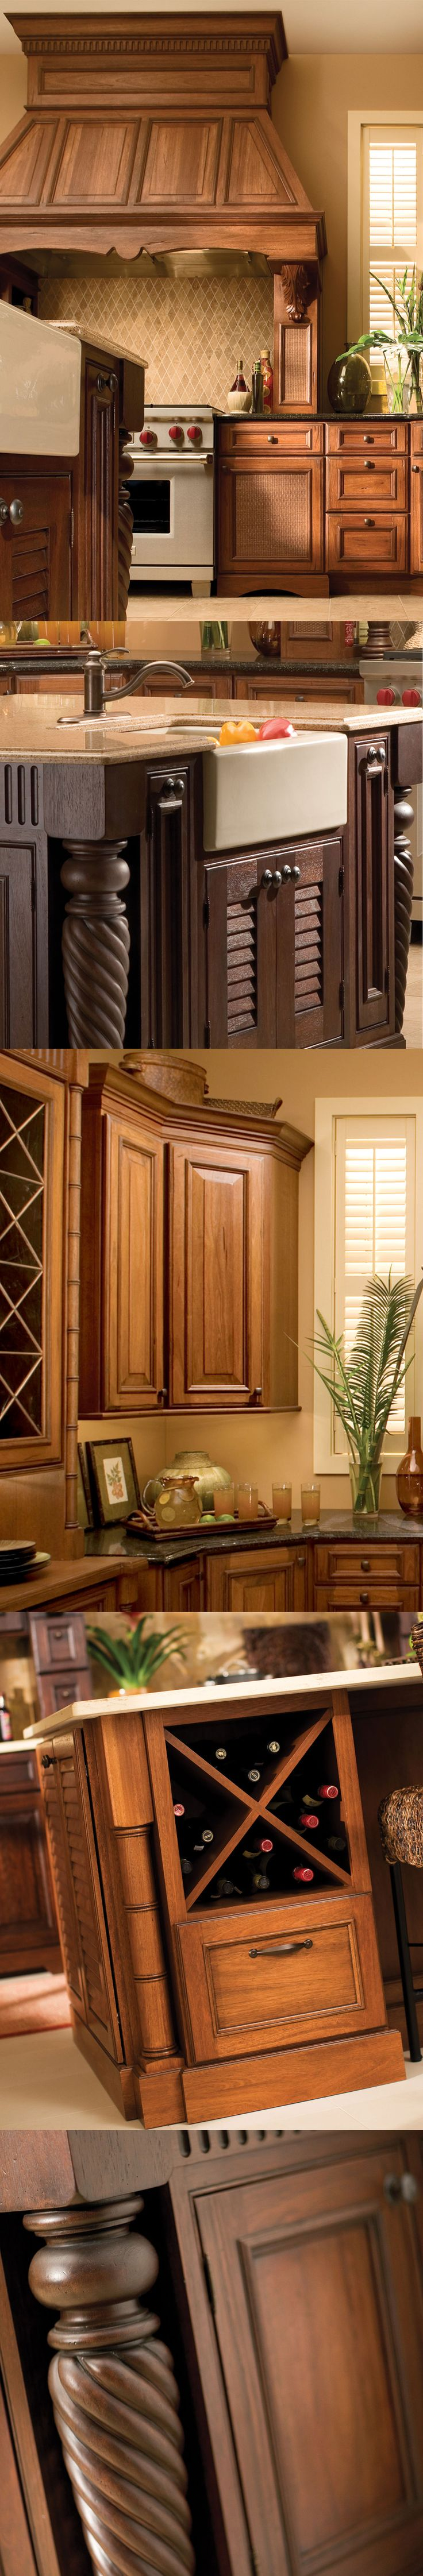 West Indies Inspired Tropical Kitchen Design, Dark, Rich Woods Are Used For the Cabinets and Door Styles. - Dura Supreme Cabinetry